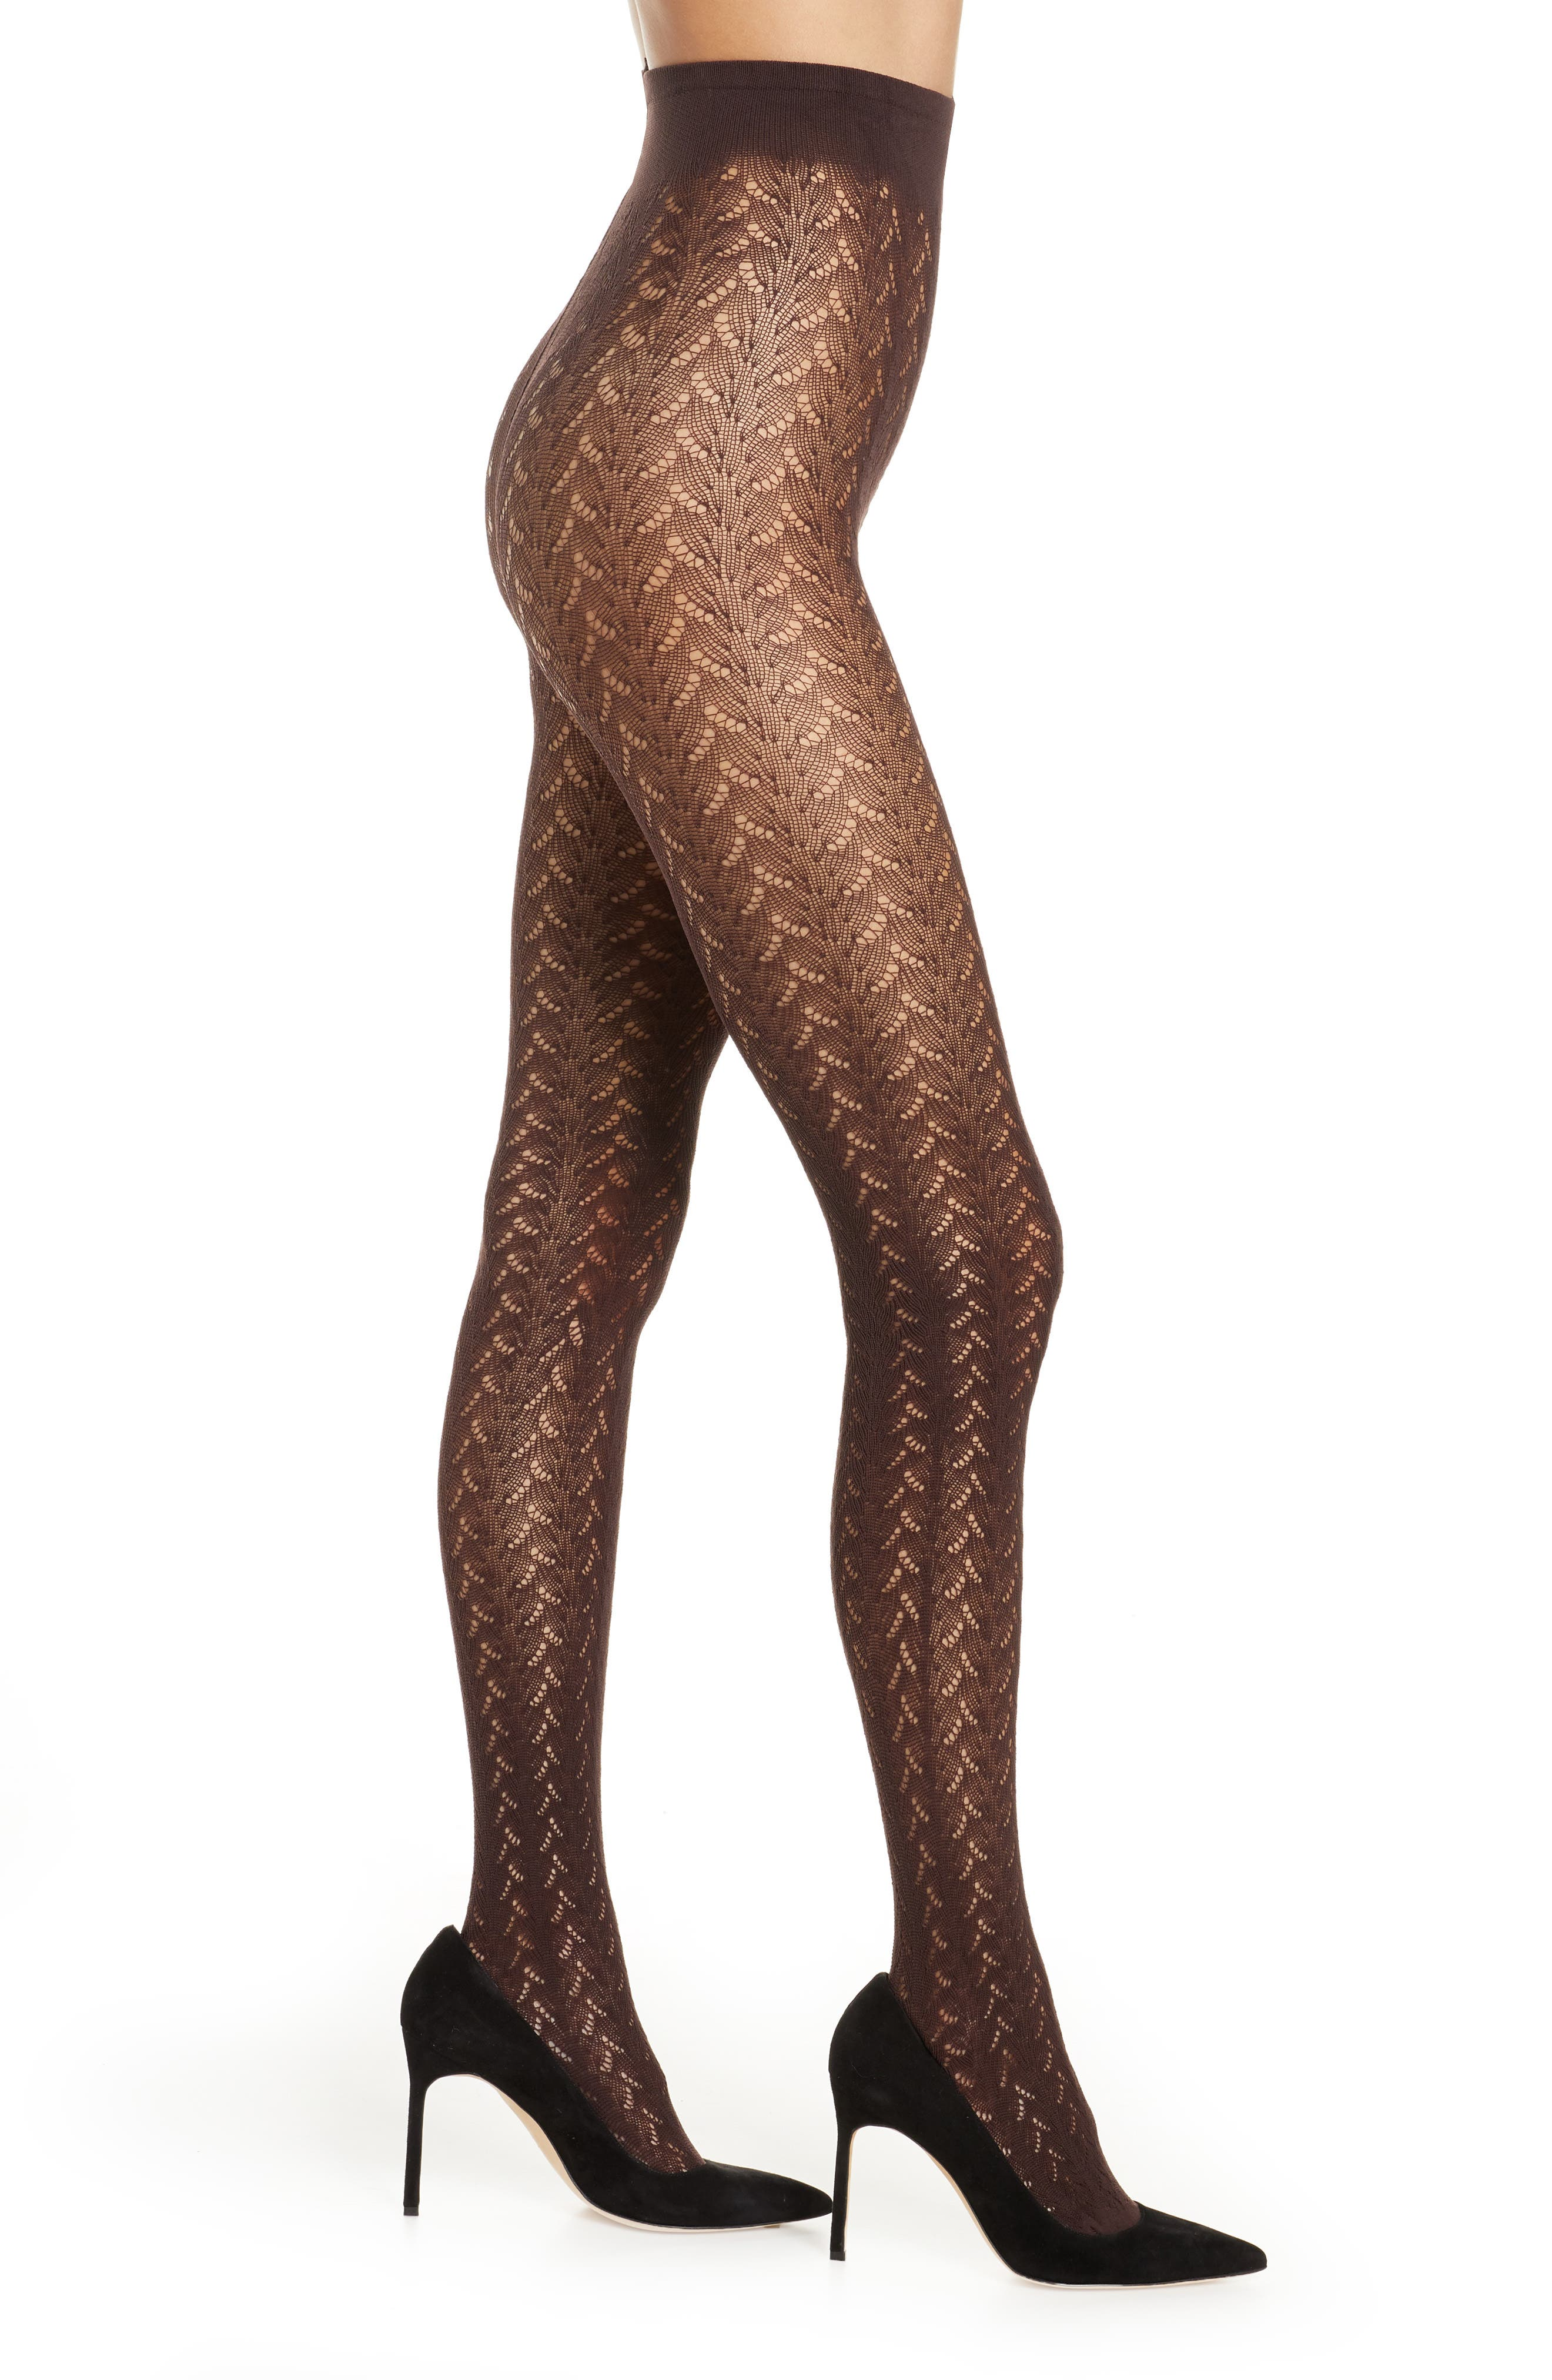 1960s Tights, Stockings, Panty Hose, Knee High Socks Womens Oroblu Openwork Tights $36.00 AT vintagedancer.com